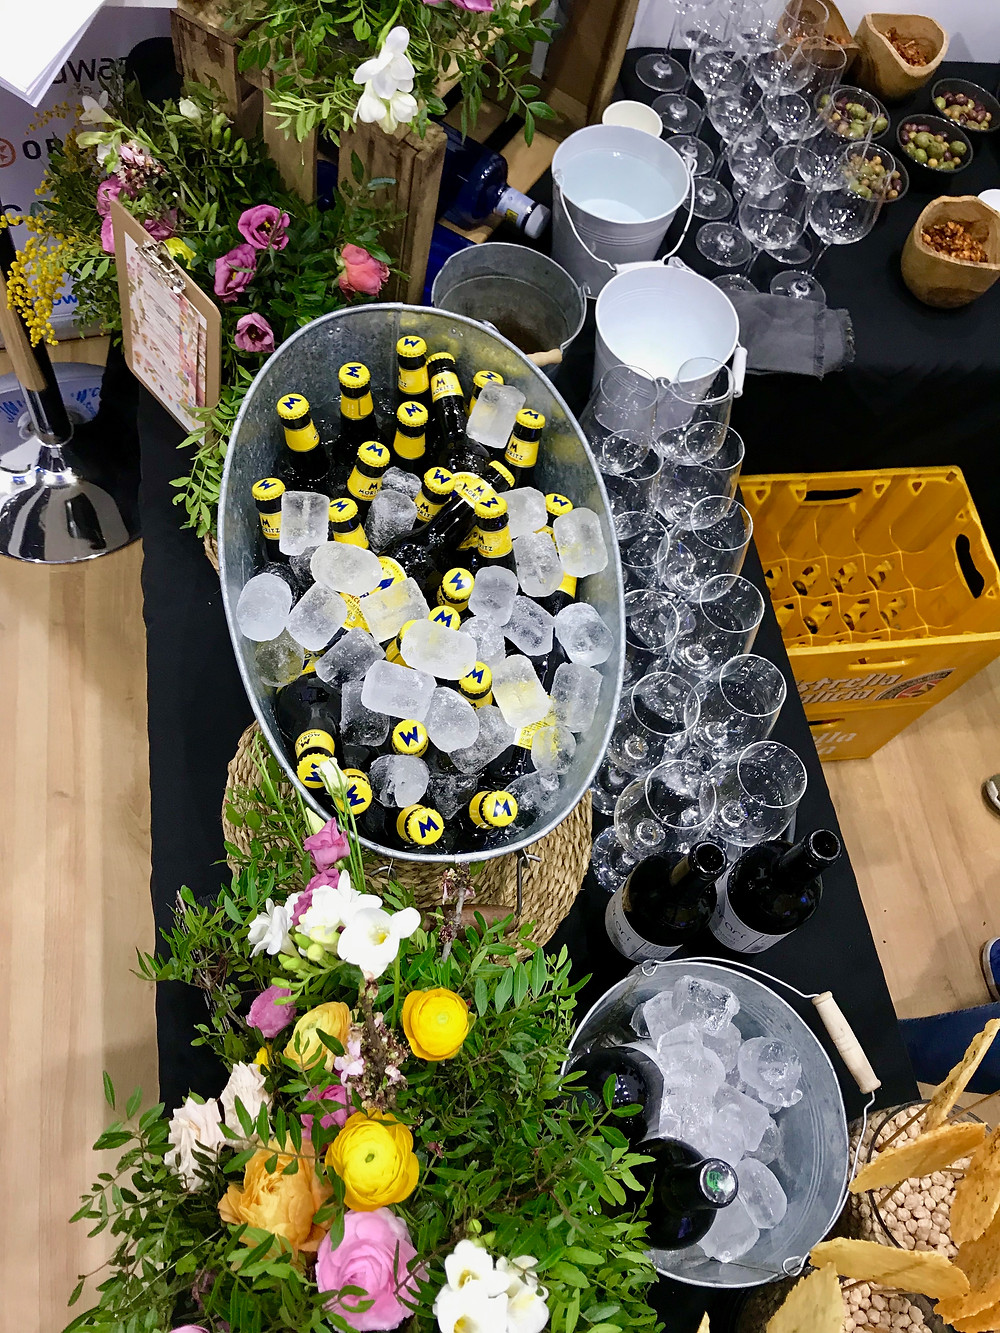 catering mwc, catering service, mobile world congress